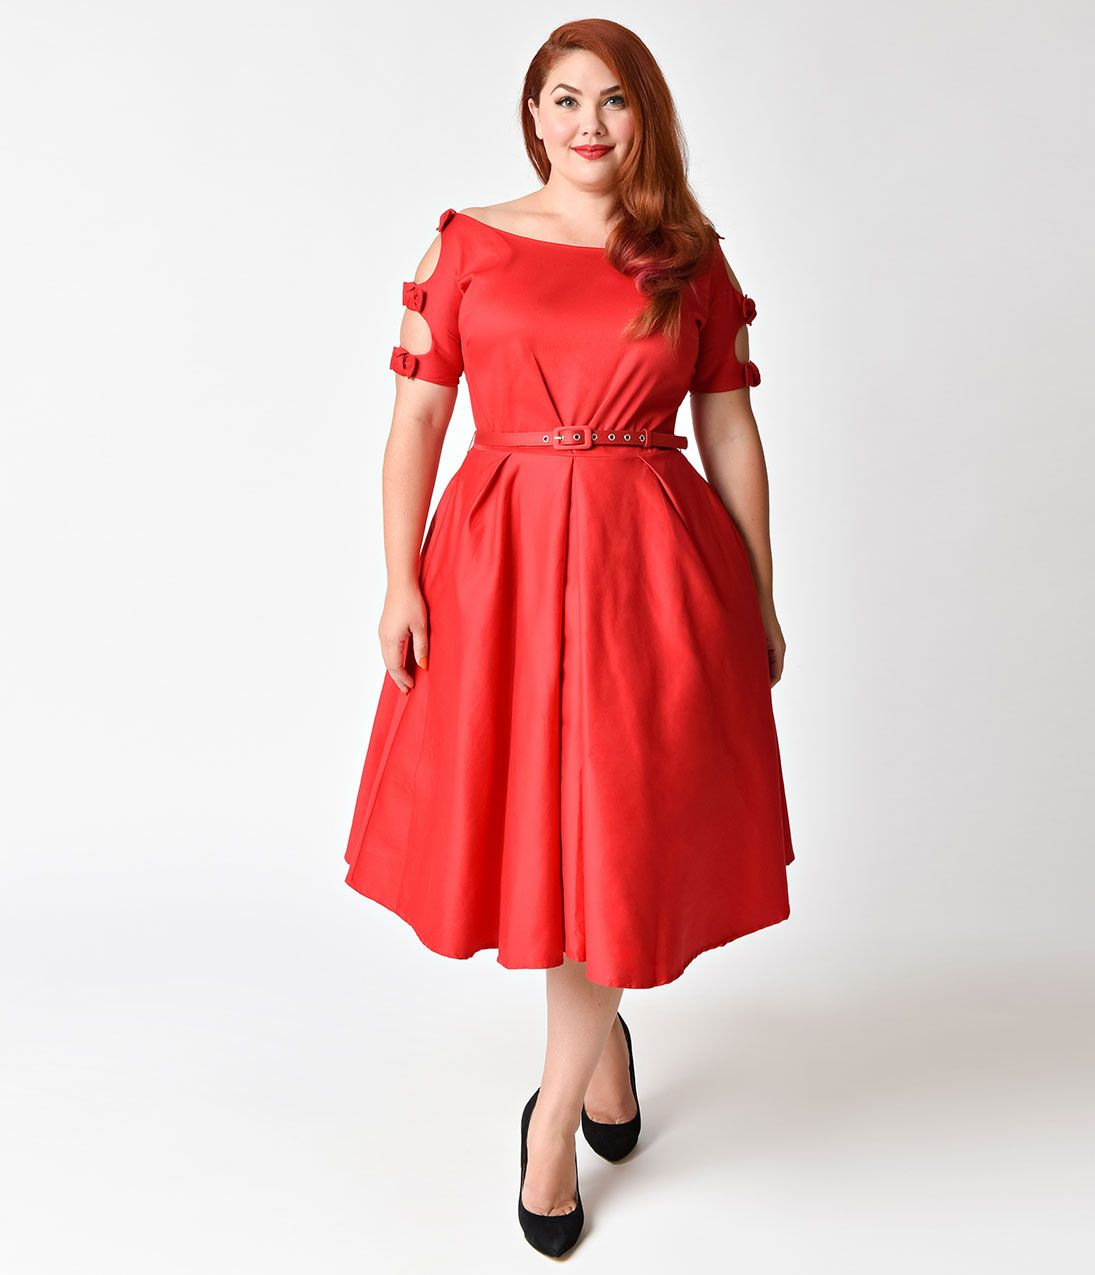 Plus size vintage dresses plus size retro dresses cocktail party plus size retro dresses swing rockabilly pinup dresses unique vintage plus size 1950s ombrellifo Gallery